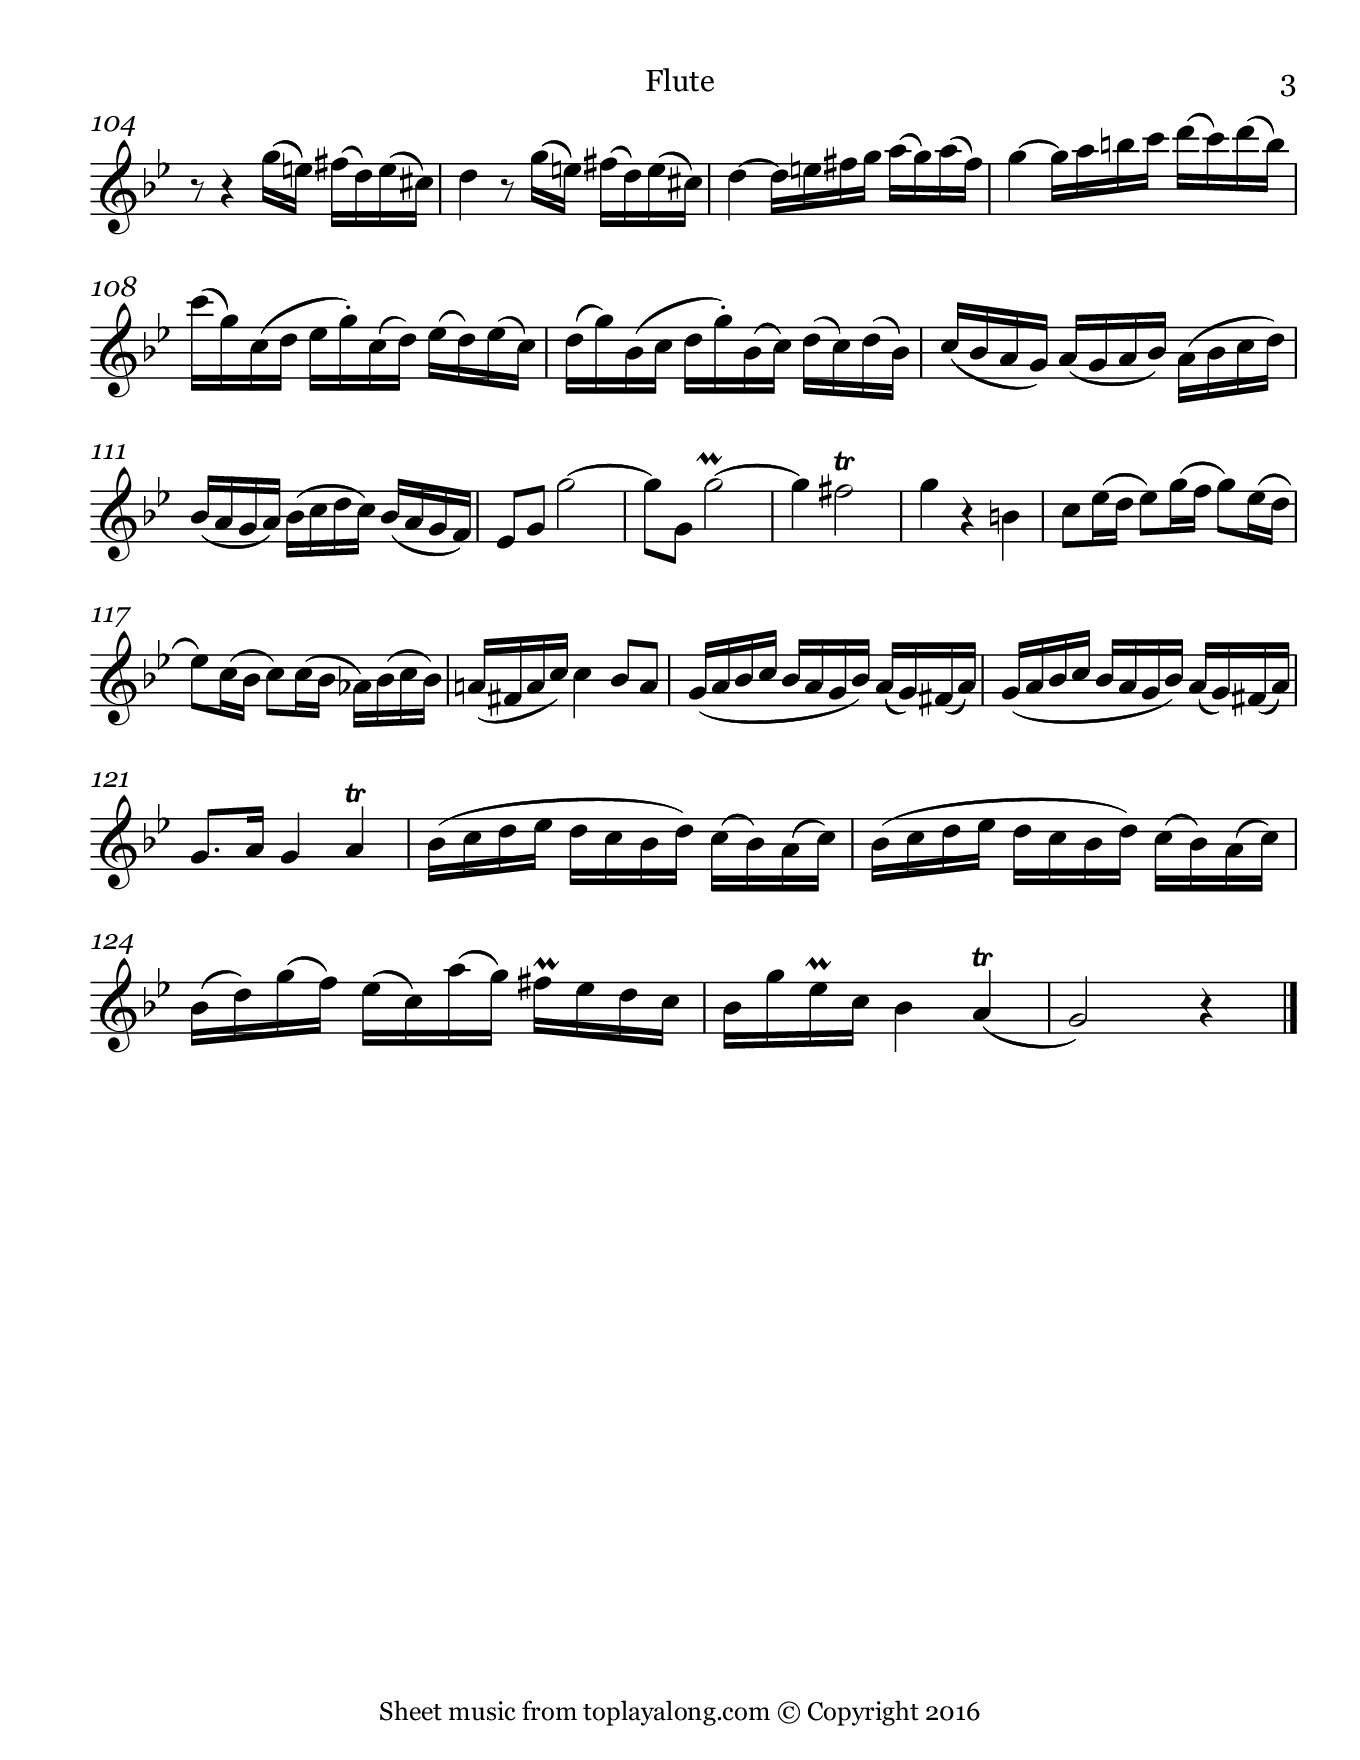 Sonata in G minor BWV 1020 (I. Allegro) by J. S. Bach. Sheet music for Flute, page 3.